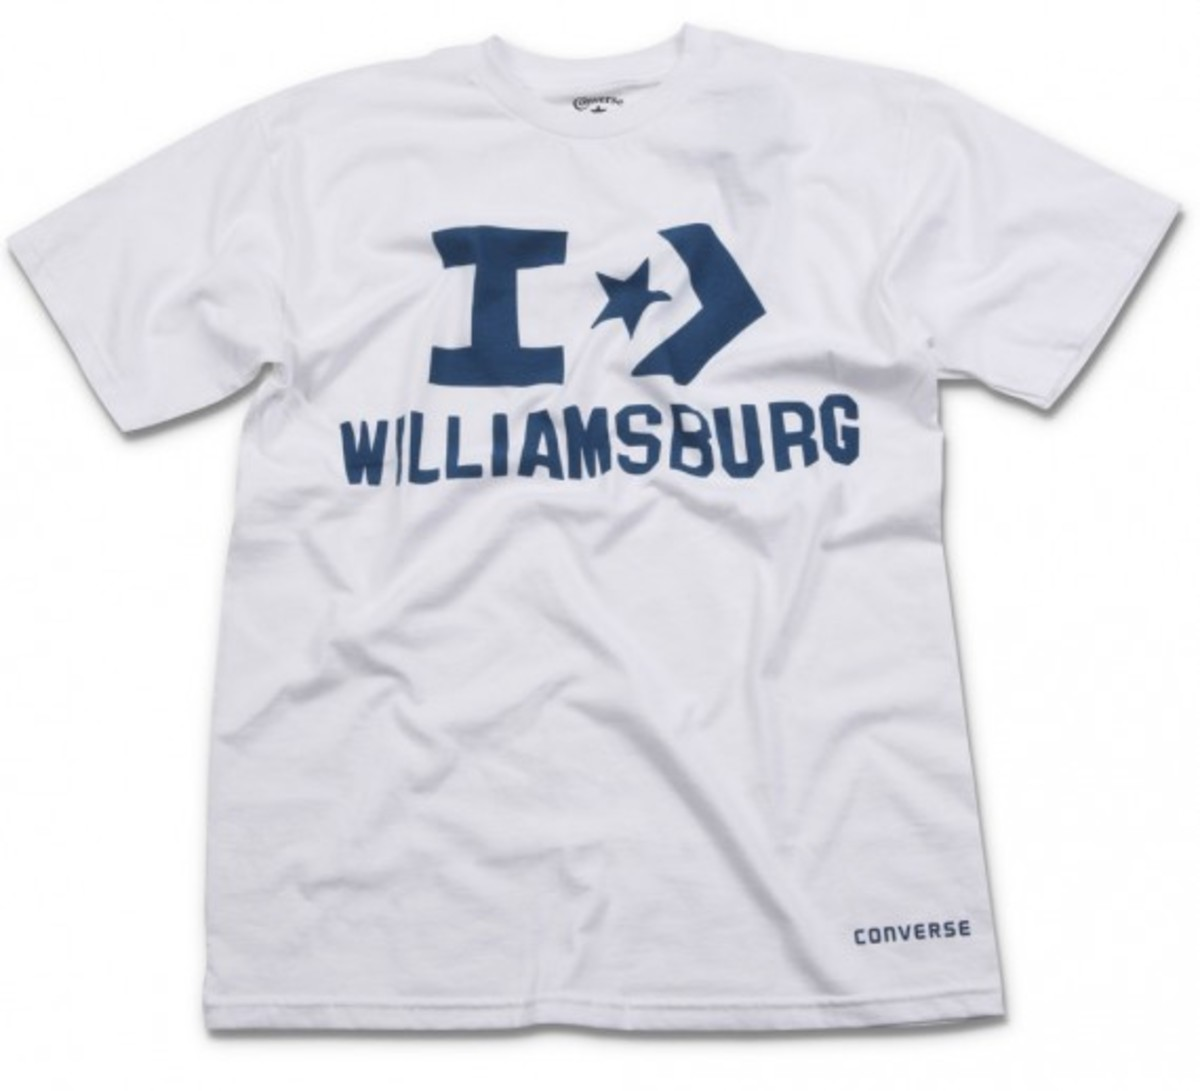 I-Star-Chevron-Williamsburg-Tee-lg